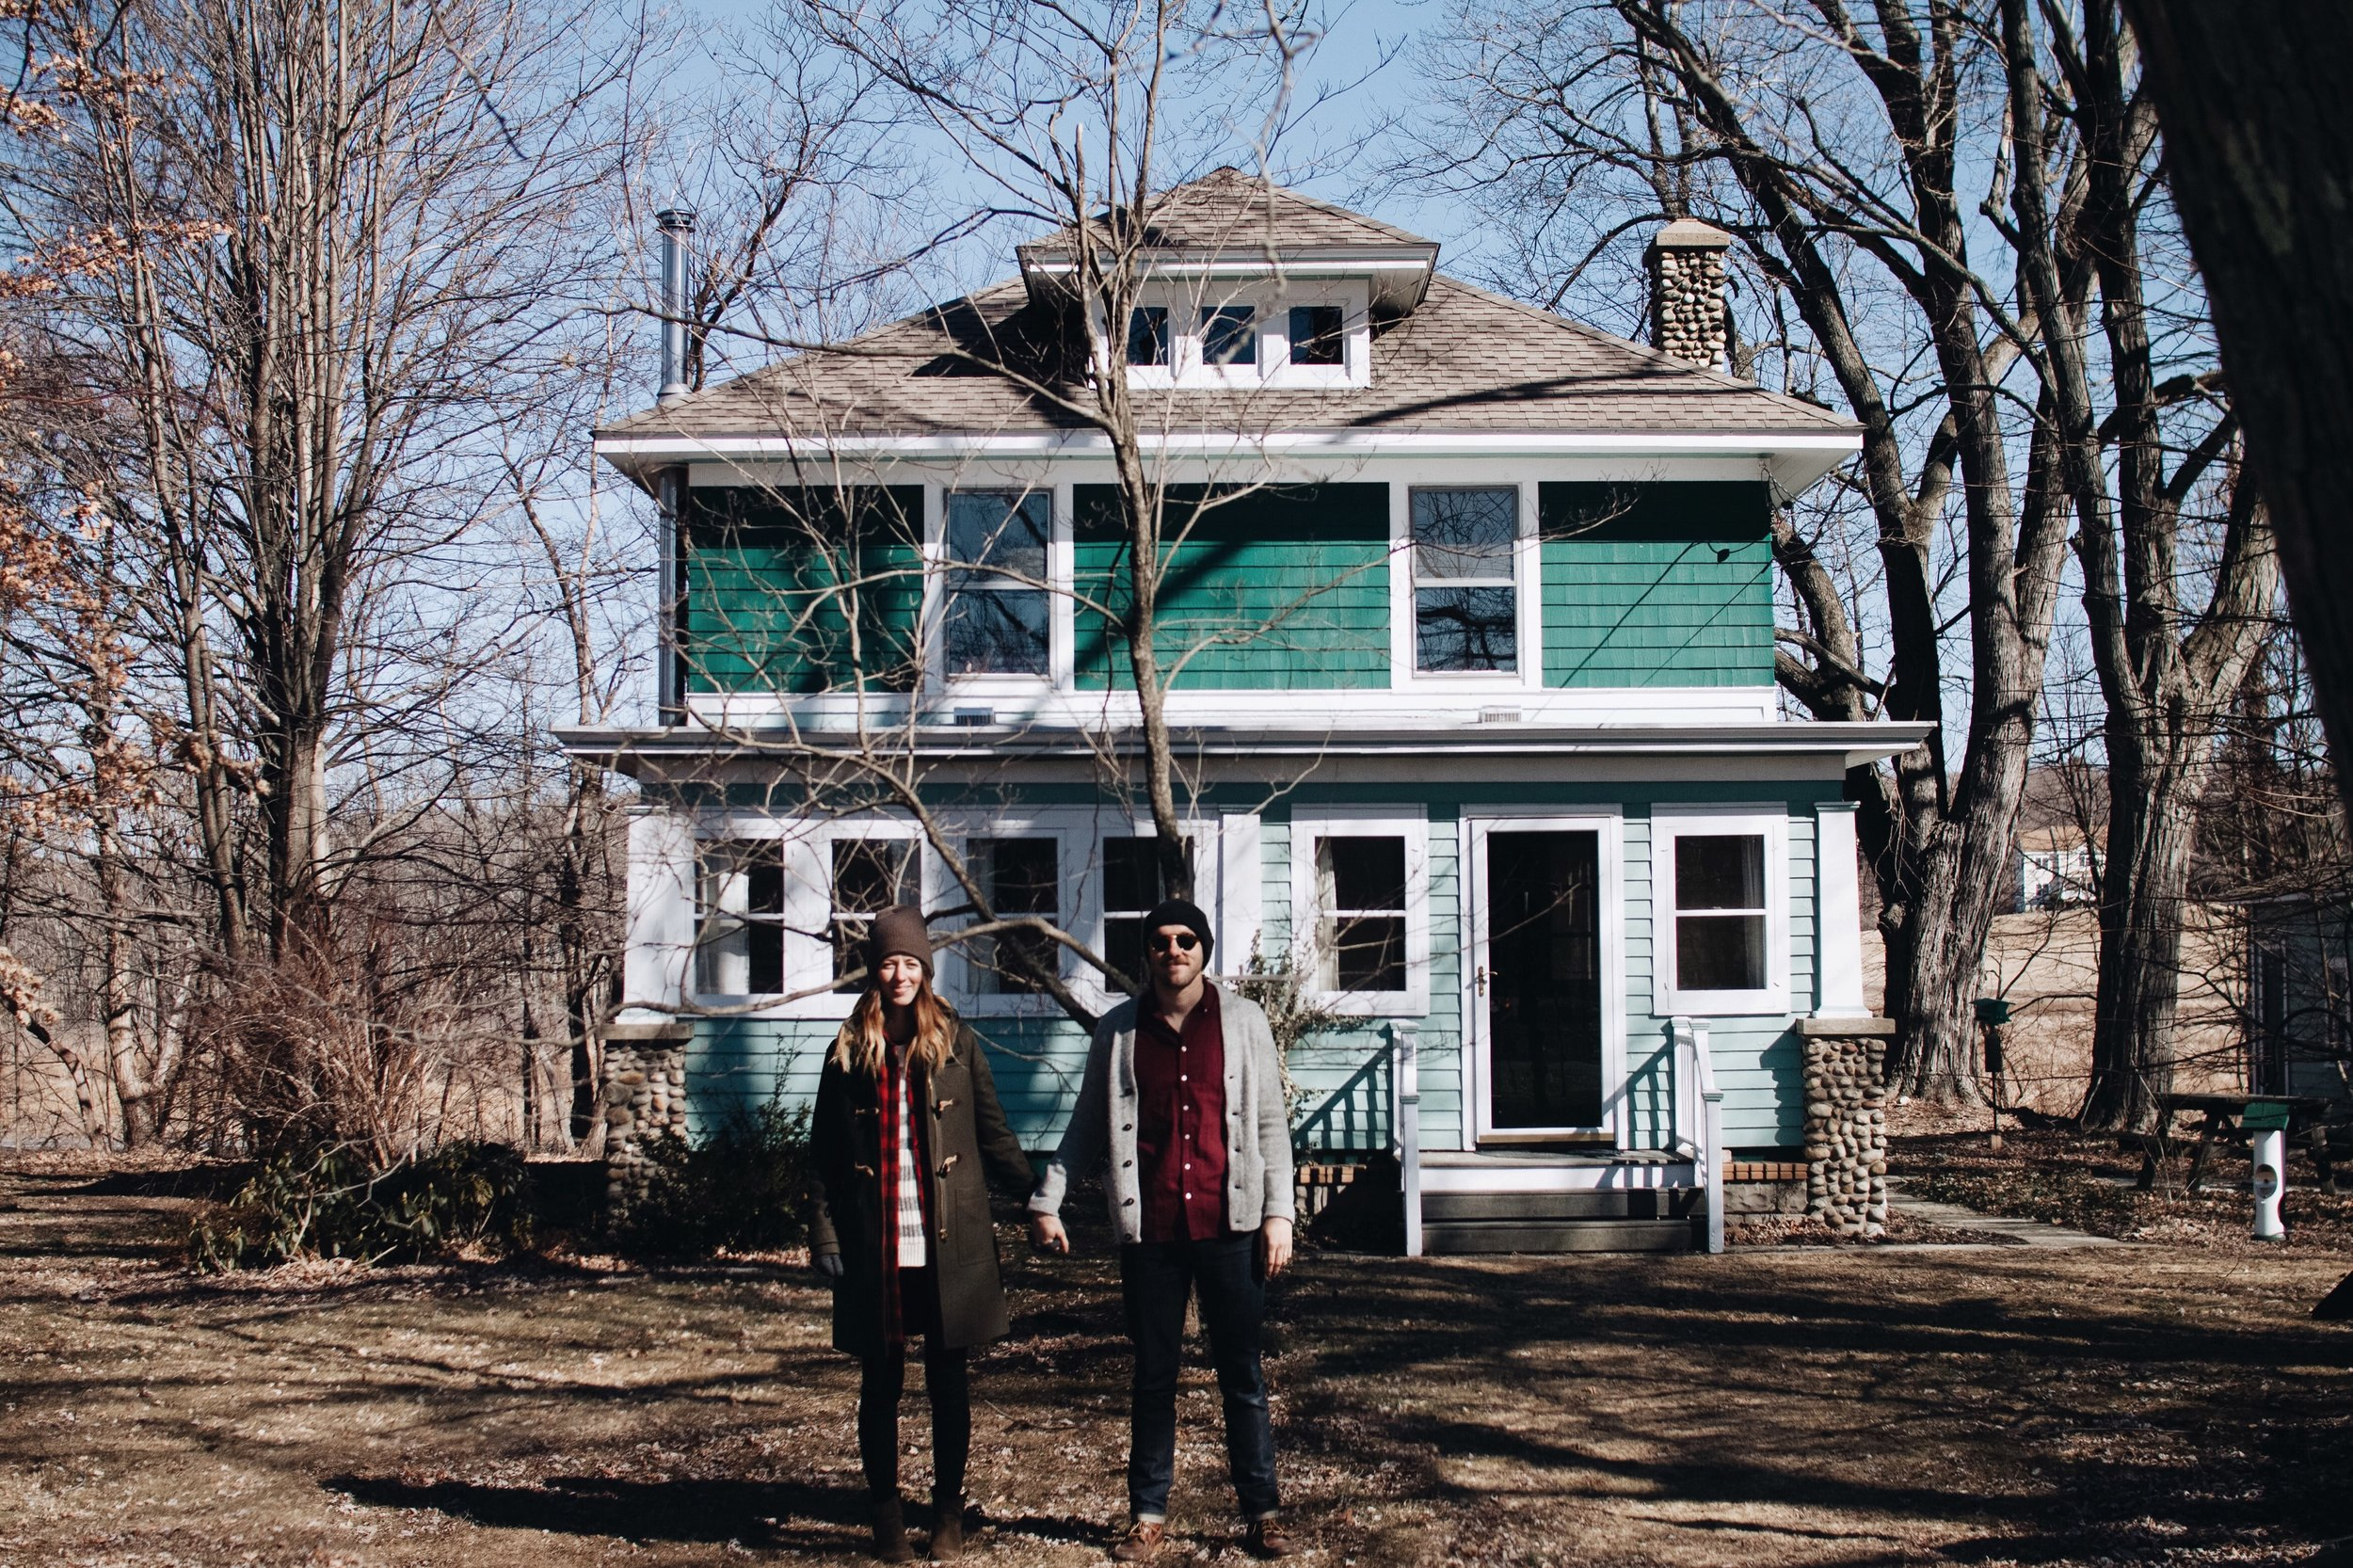 Our realtor took this snap of us after our second viewing of the home, just before we put in our offer.